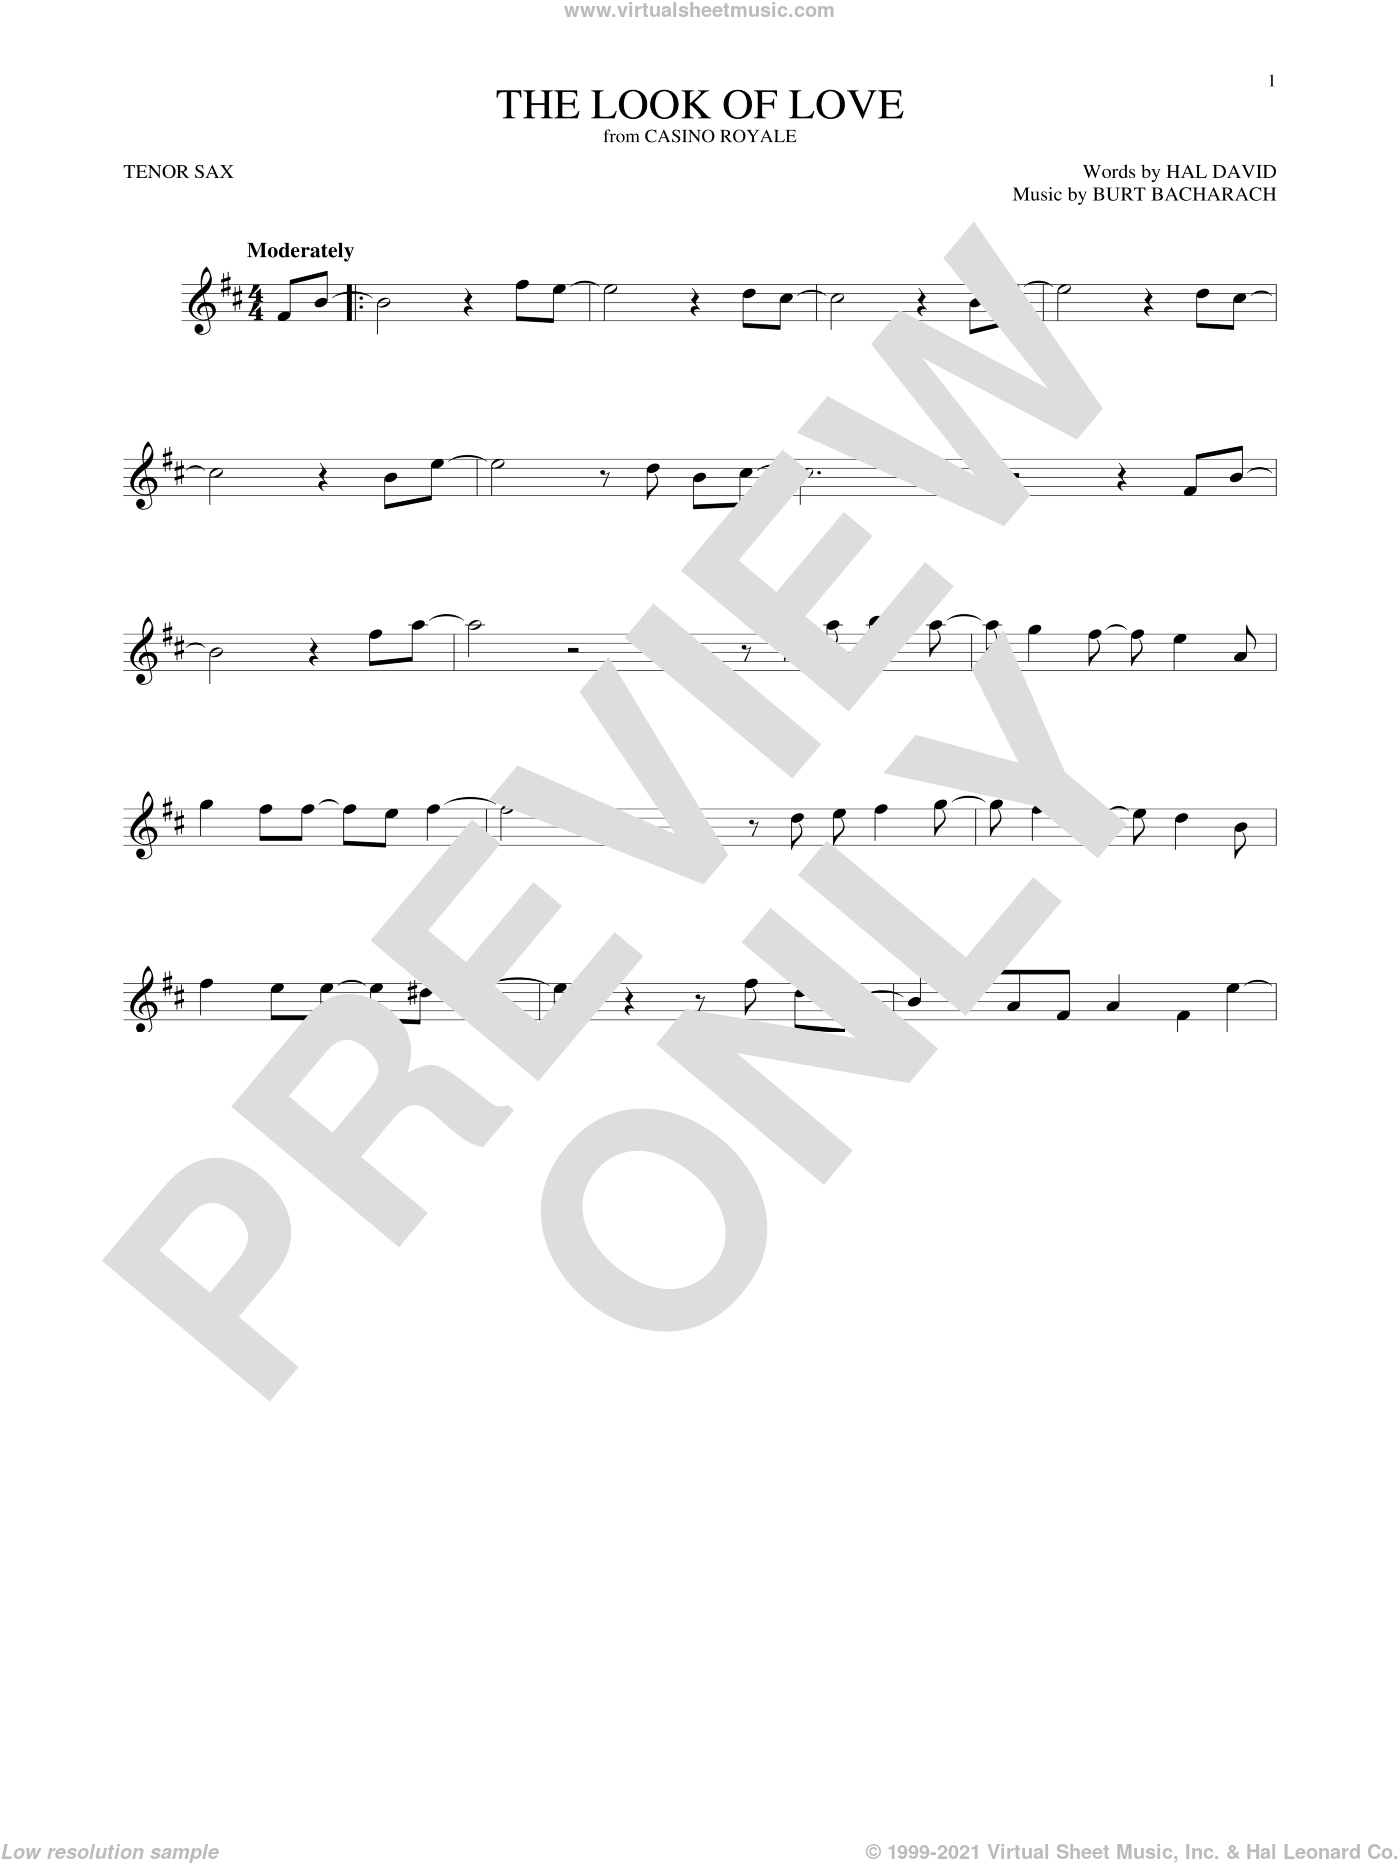 The Look Of Love sheet music for tenor saxophone solo ( Sax) by Hal David and Burt Bacharach. Score Image Preview.